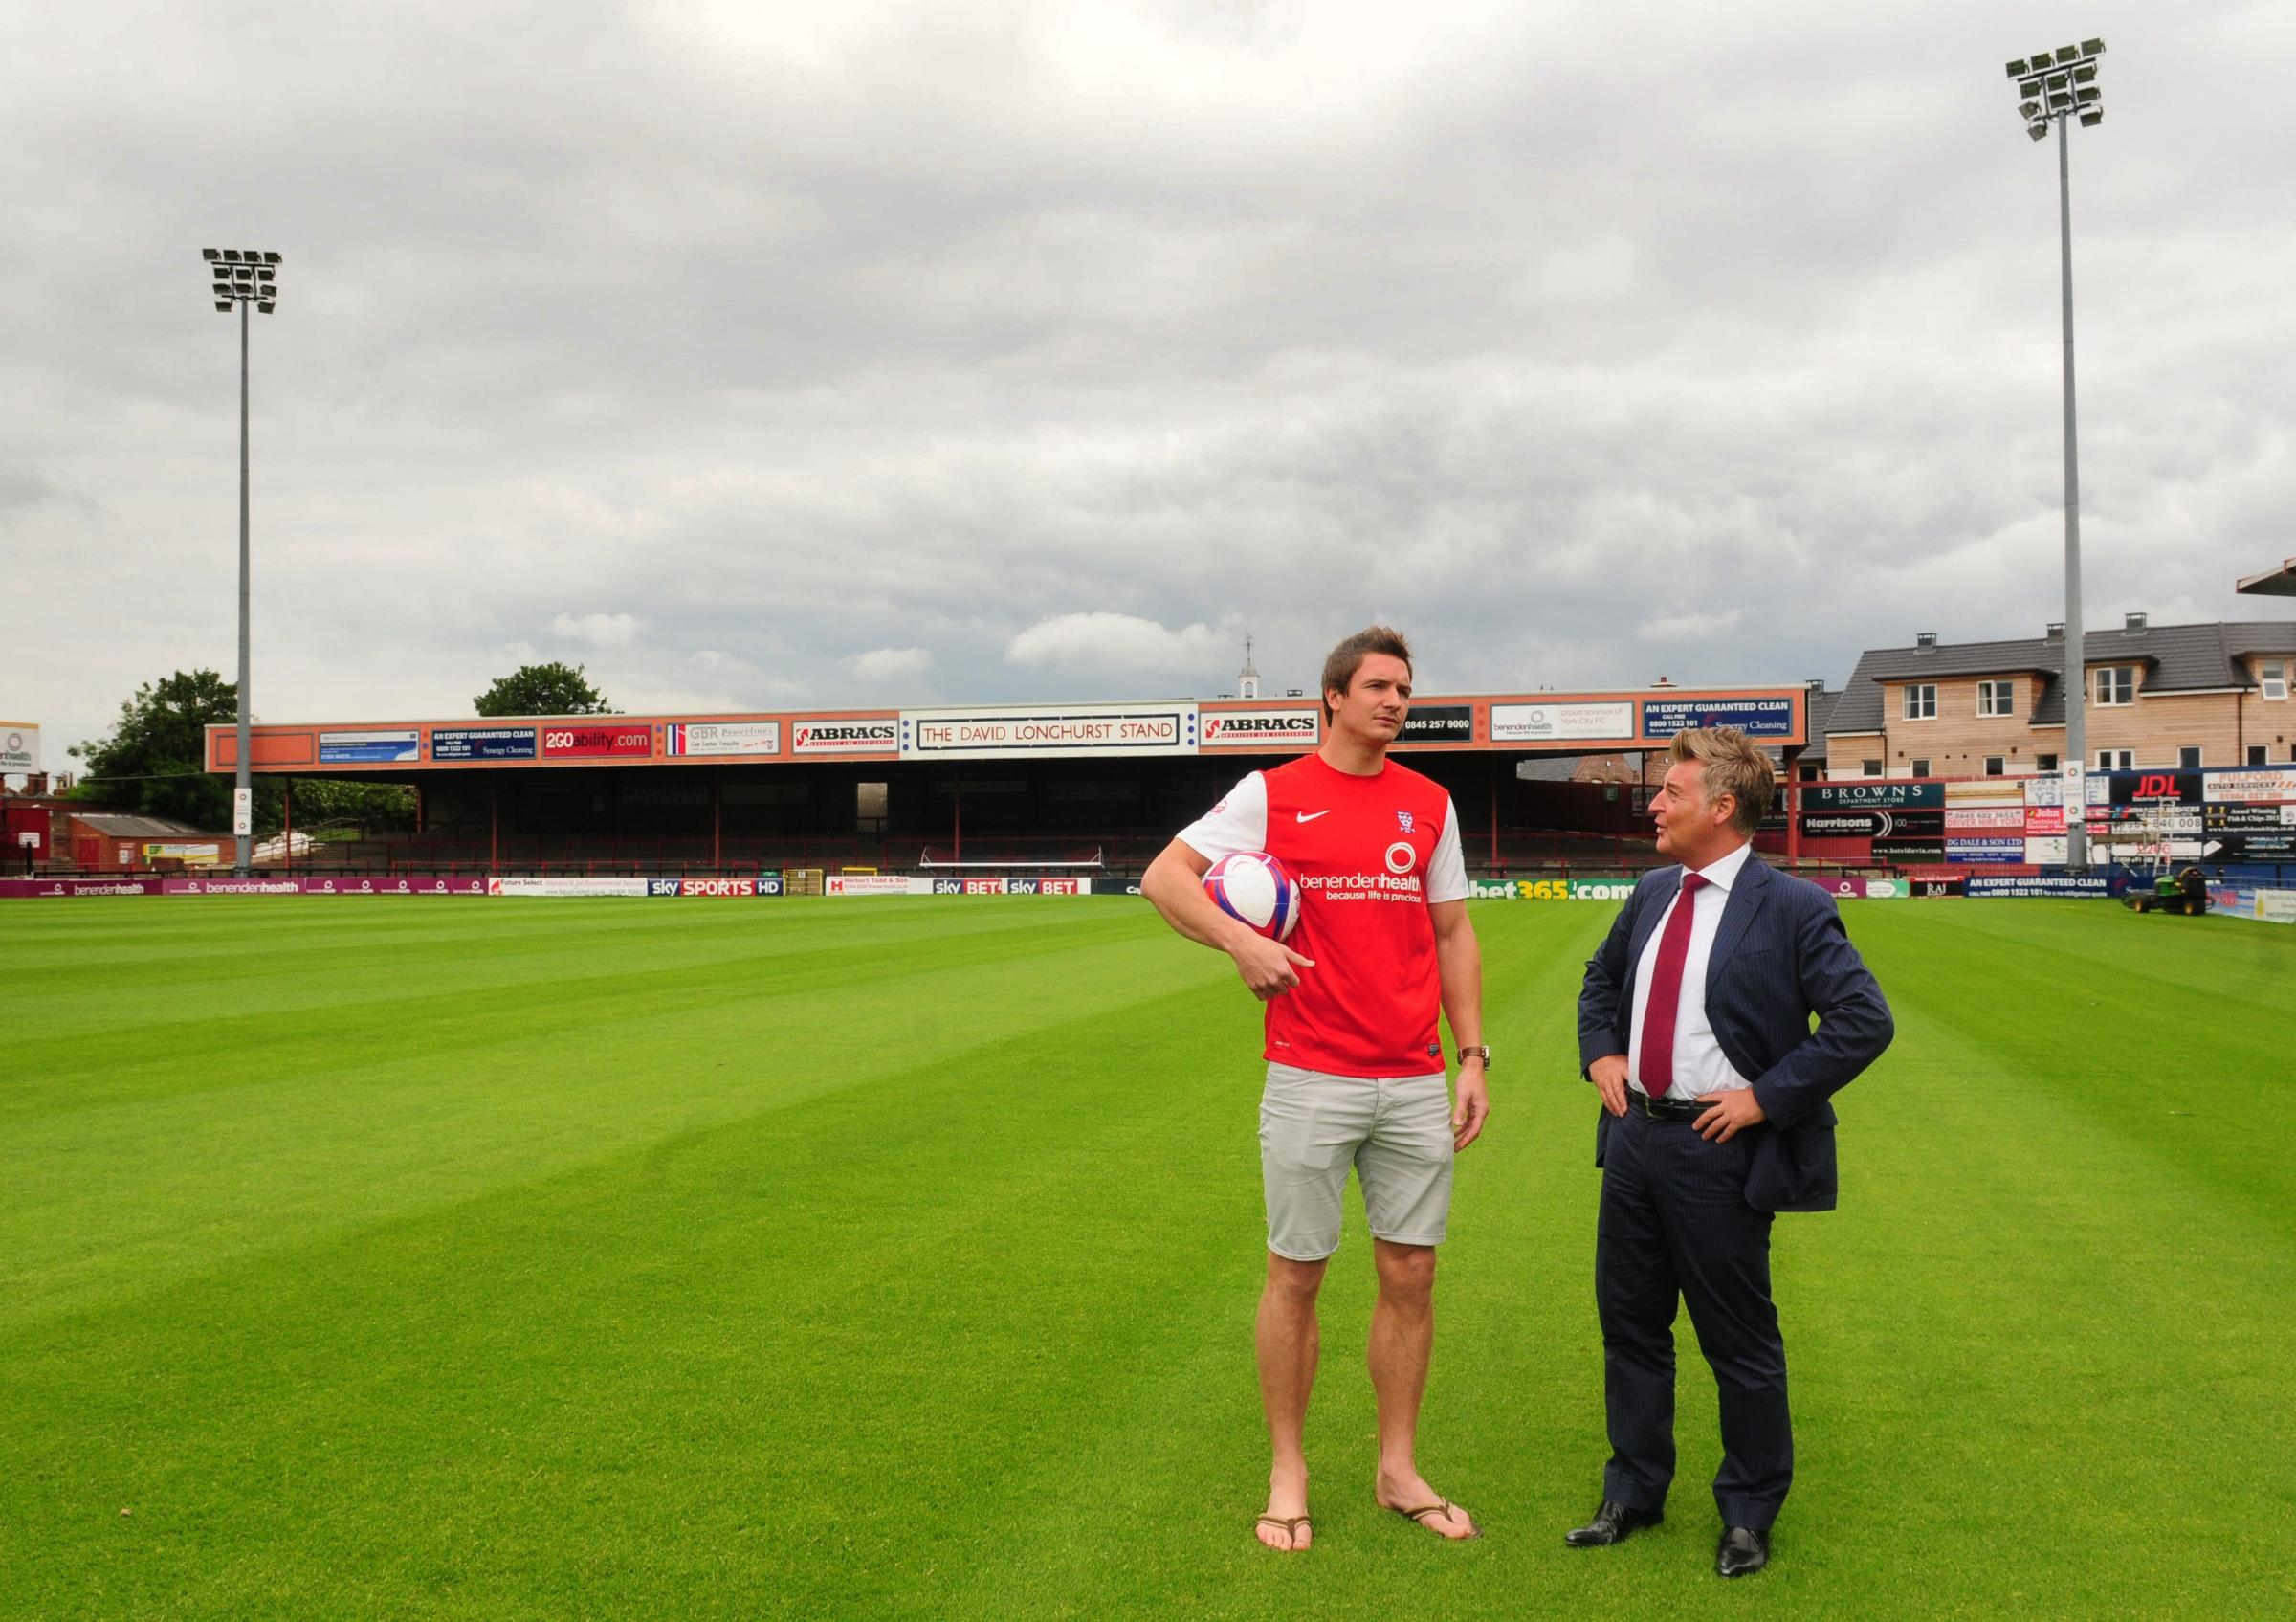 New signing Dave Winfield up for challenge of breaking York City's solid centre-back pairing